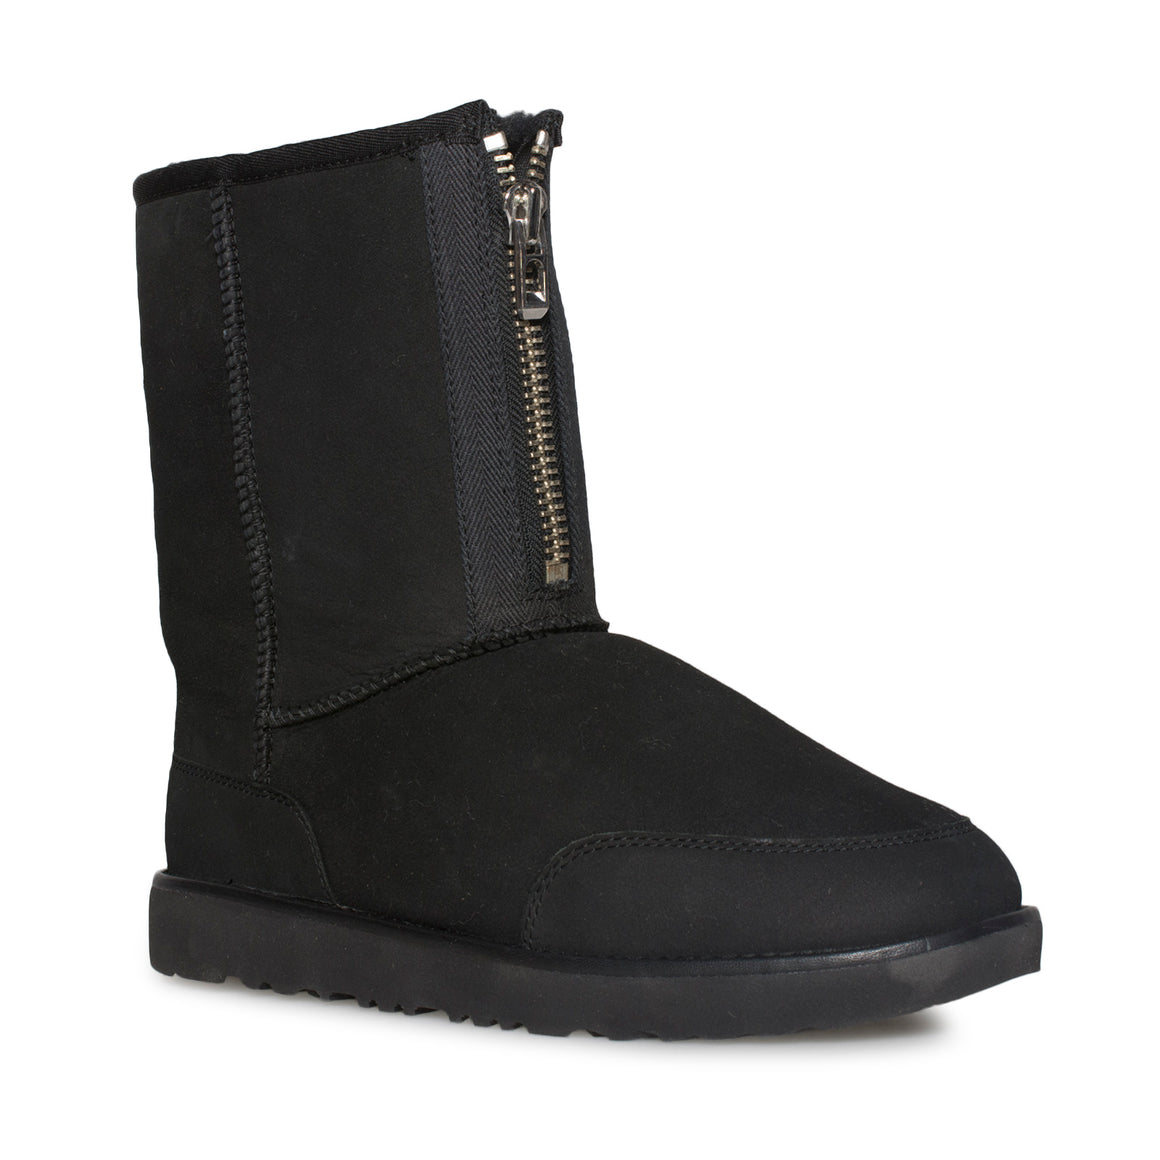 UGG Classic Short Zip Philip Lim Black Boots - Men's